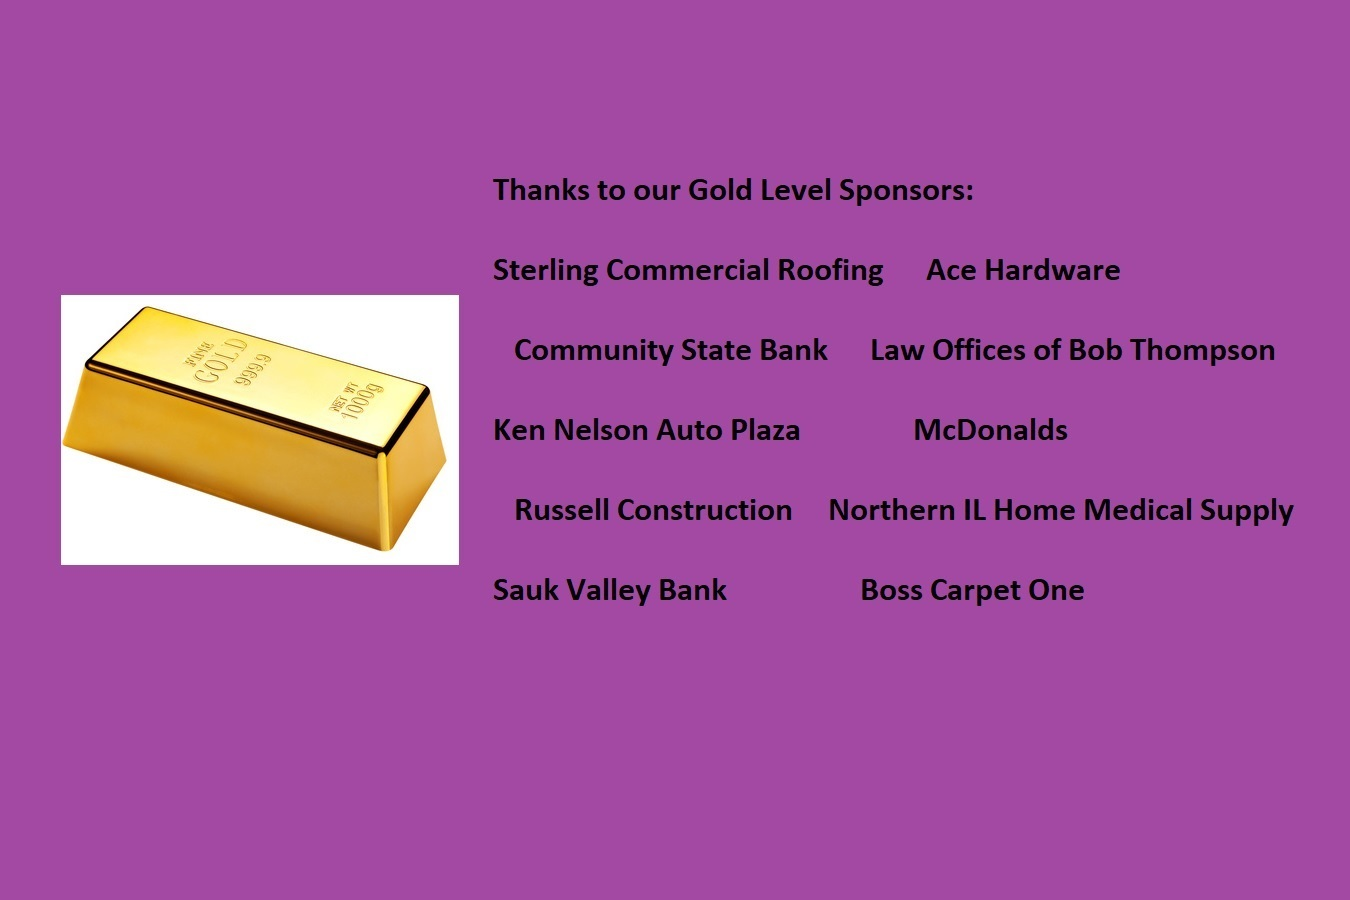 Thanks to our Gold Level Sponsors